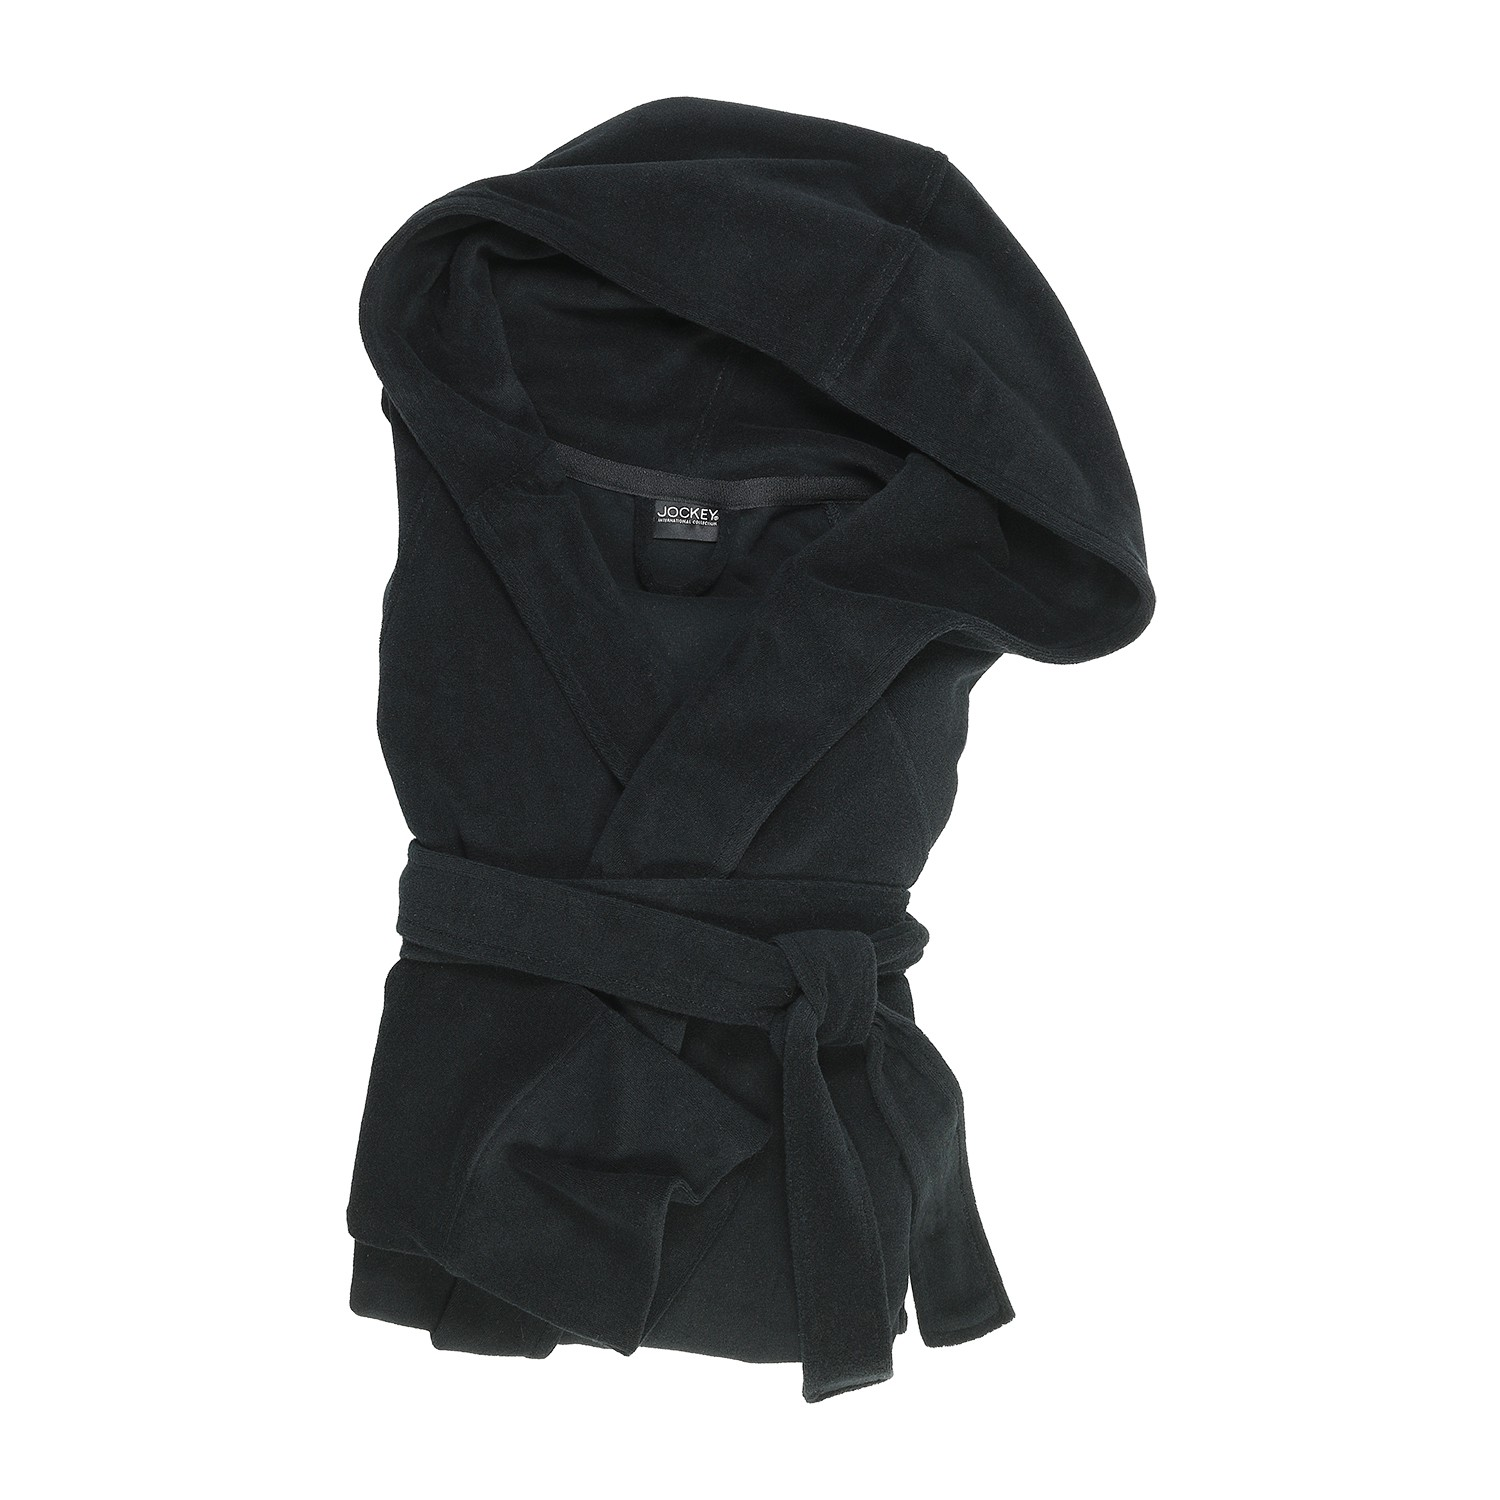 Detail Image to Bathrobe from Jockey in extra large sizes up to 6XL in black with hood